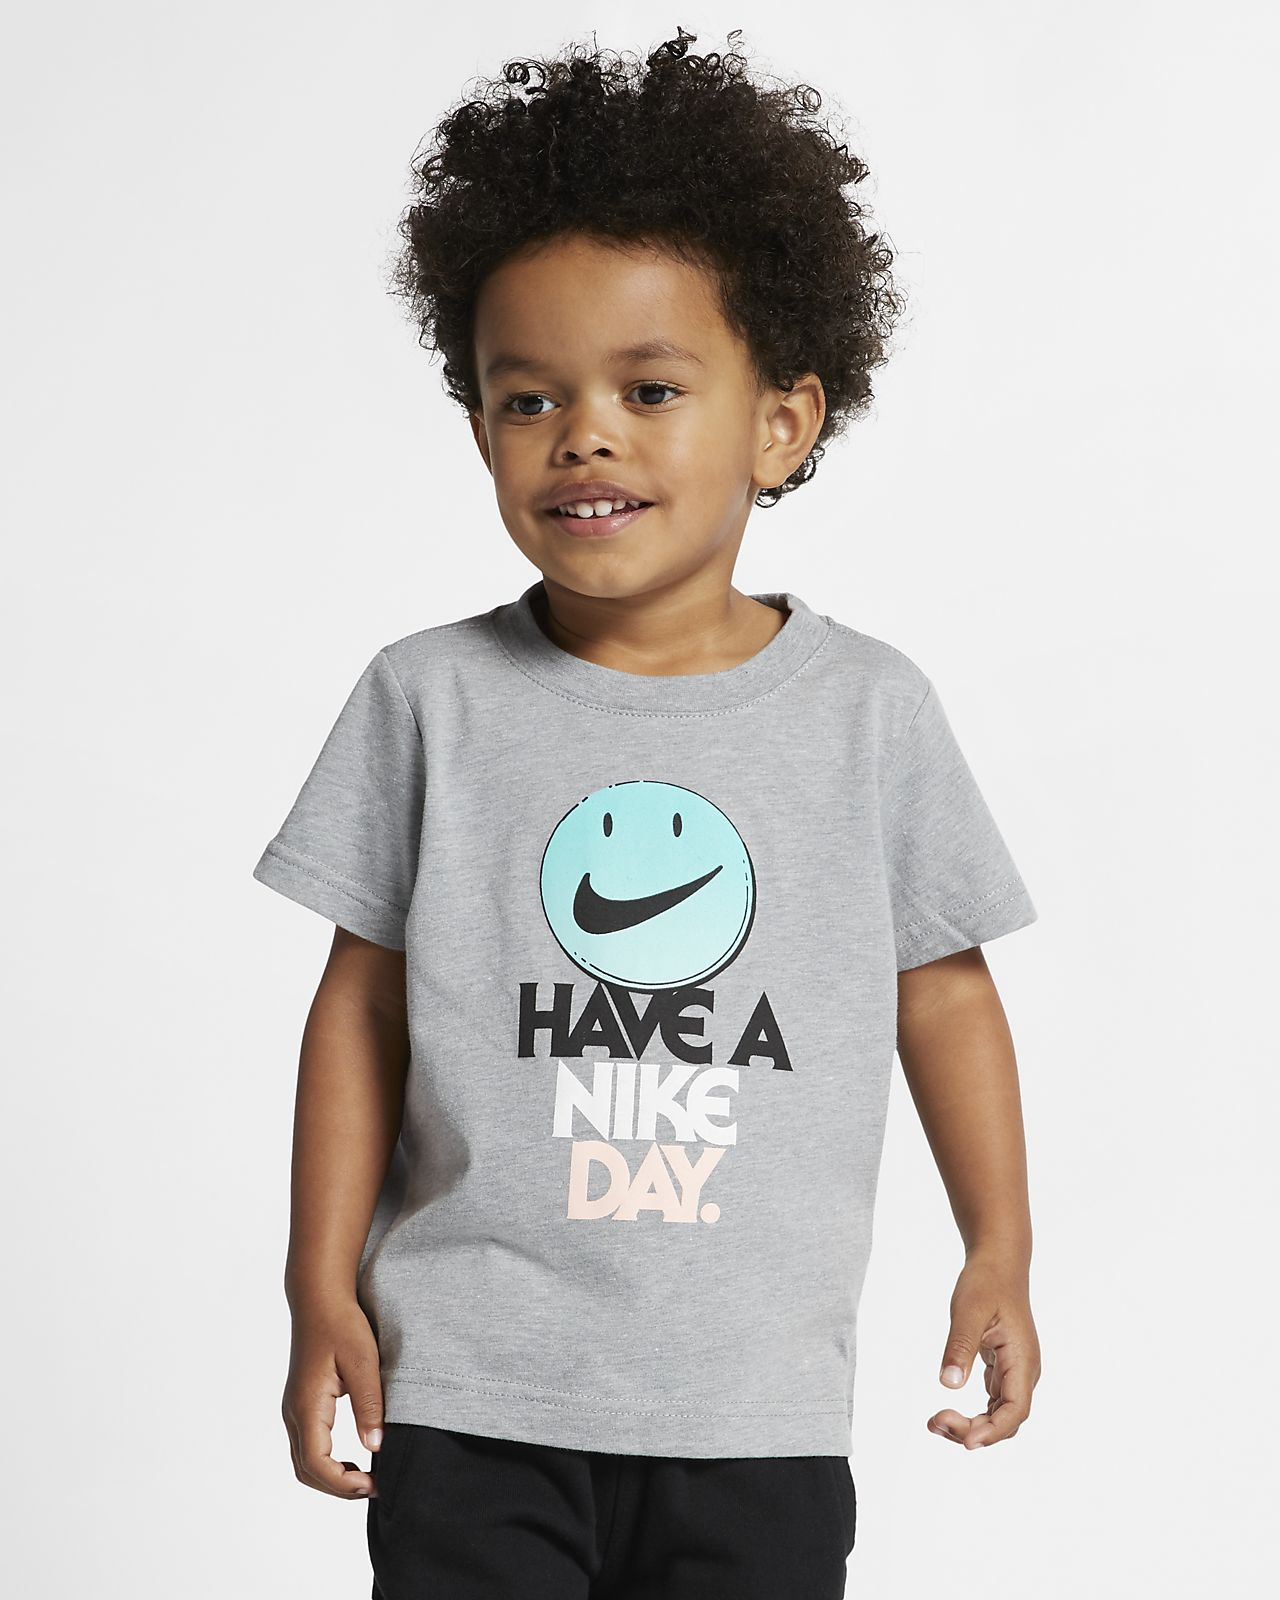 Nike Day Little Kids' T-Shirt